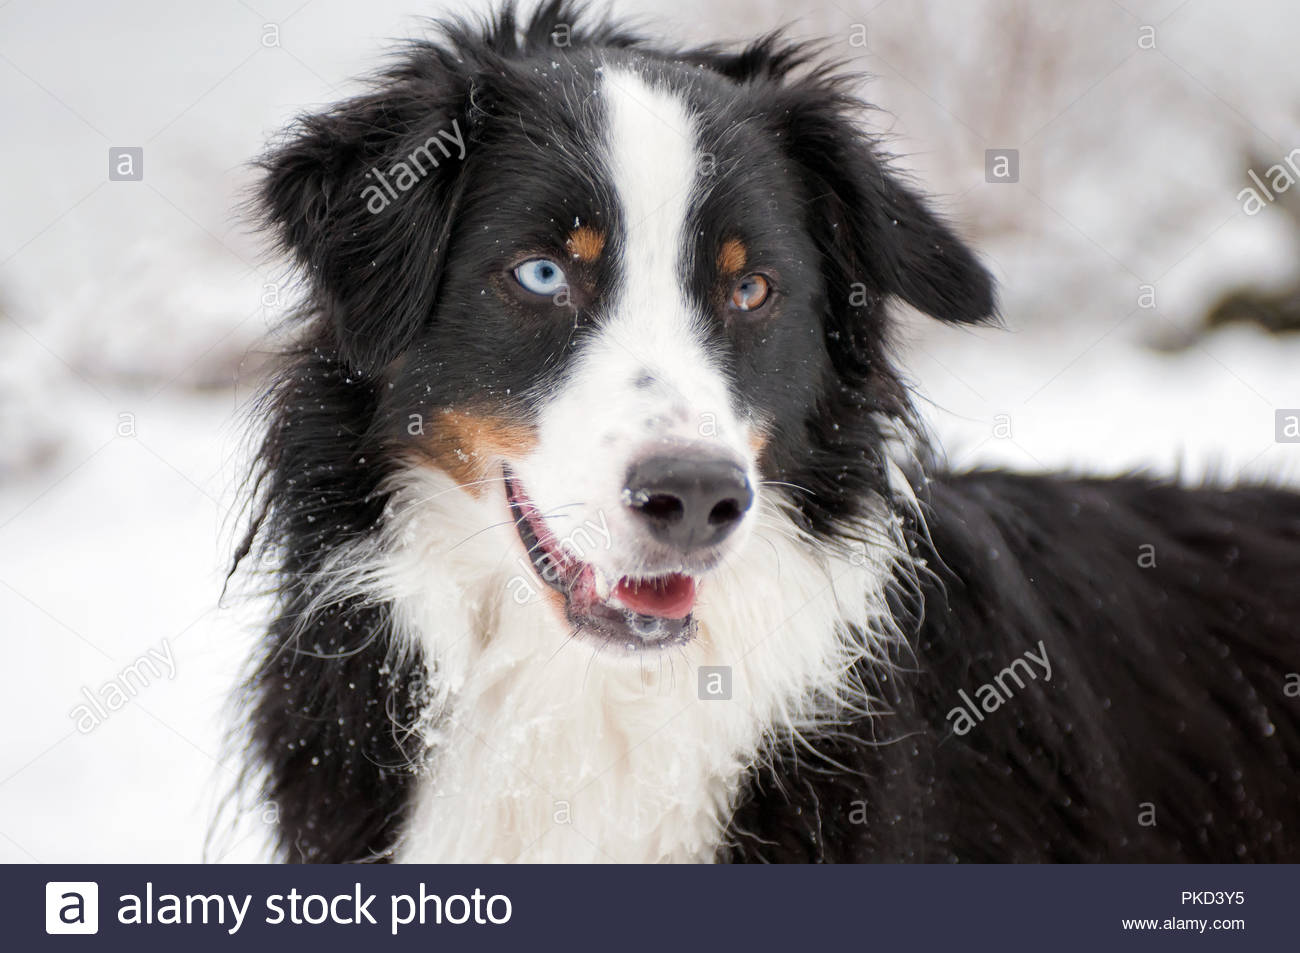 Black Tri Australian Shepherd With Blue And Brown Eye Stock